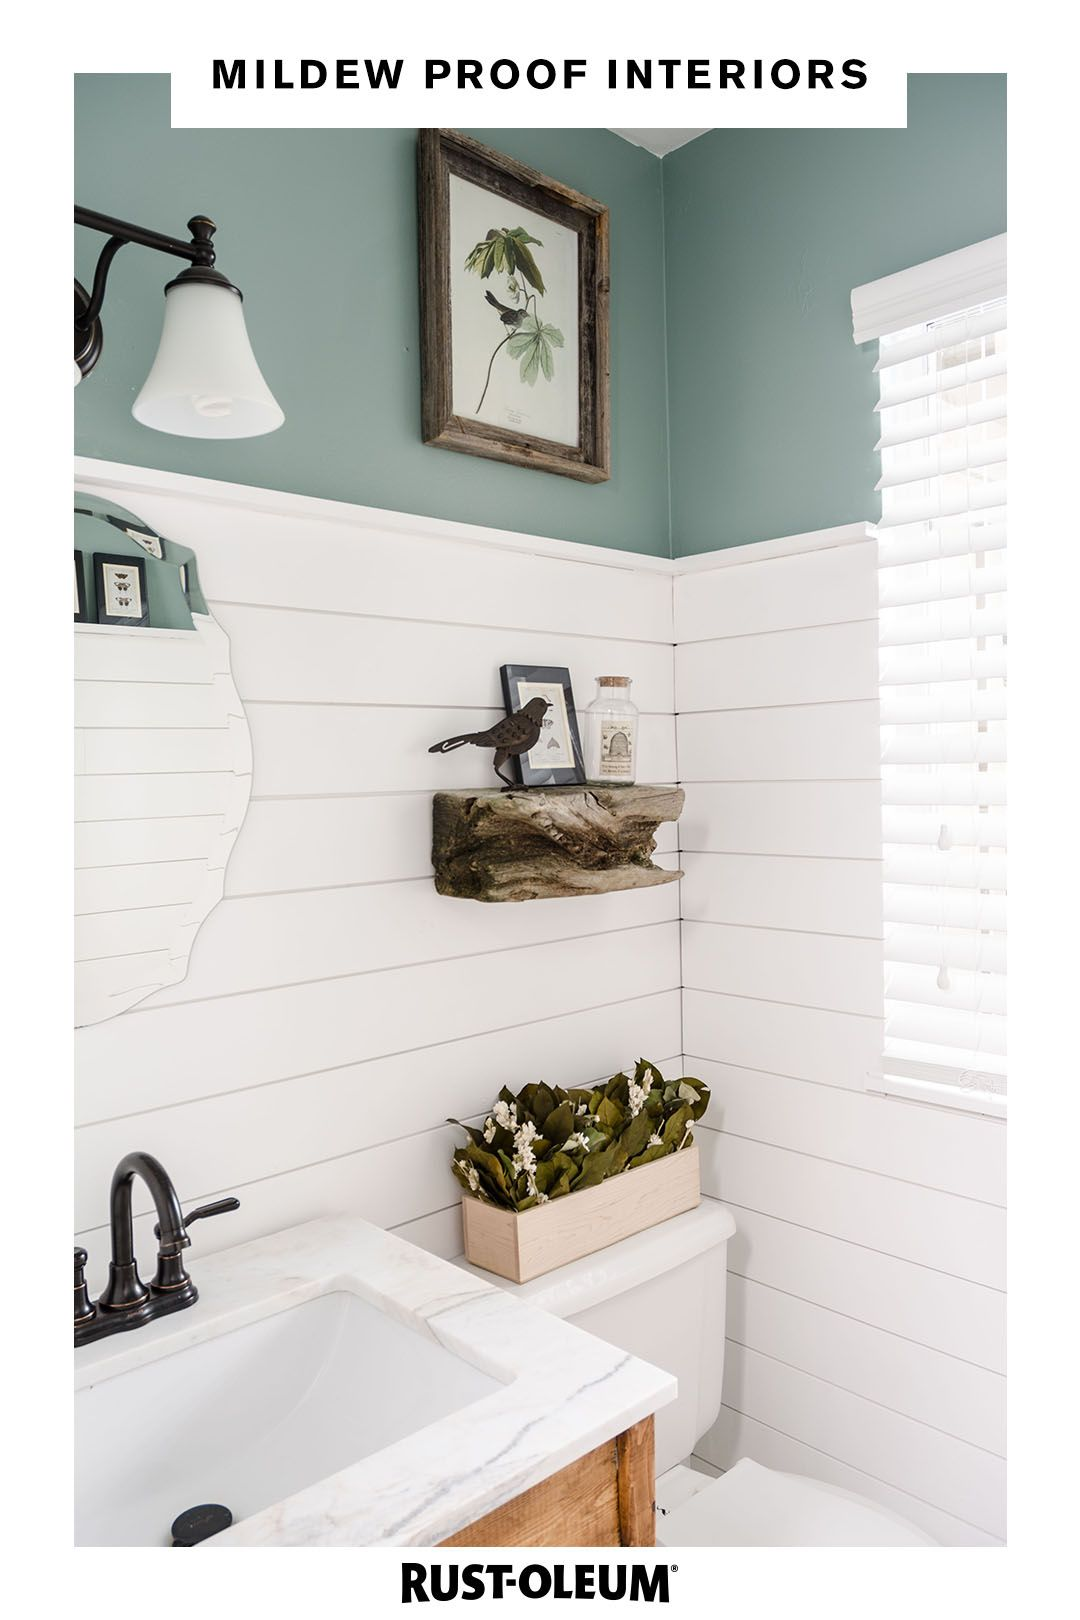 Don T Mull Over The Possibility Of Mildew After You Ve Finished Painting Something Zinsser Perma White M Bathrooms Remodel Bathroom Inspiration Bathroom Decor